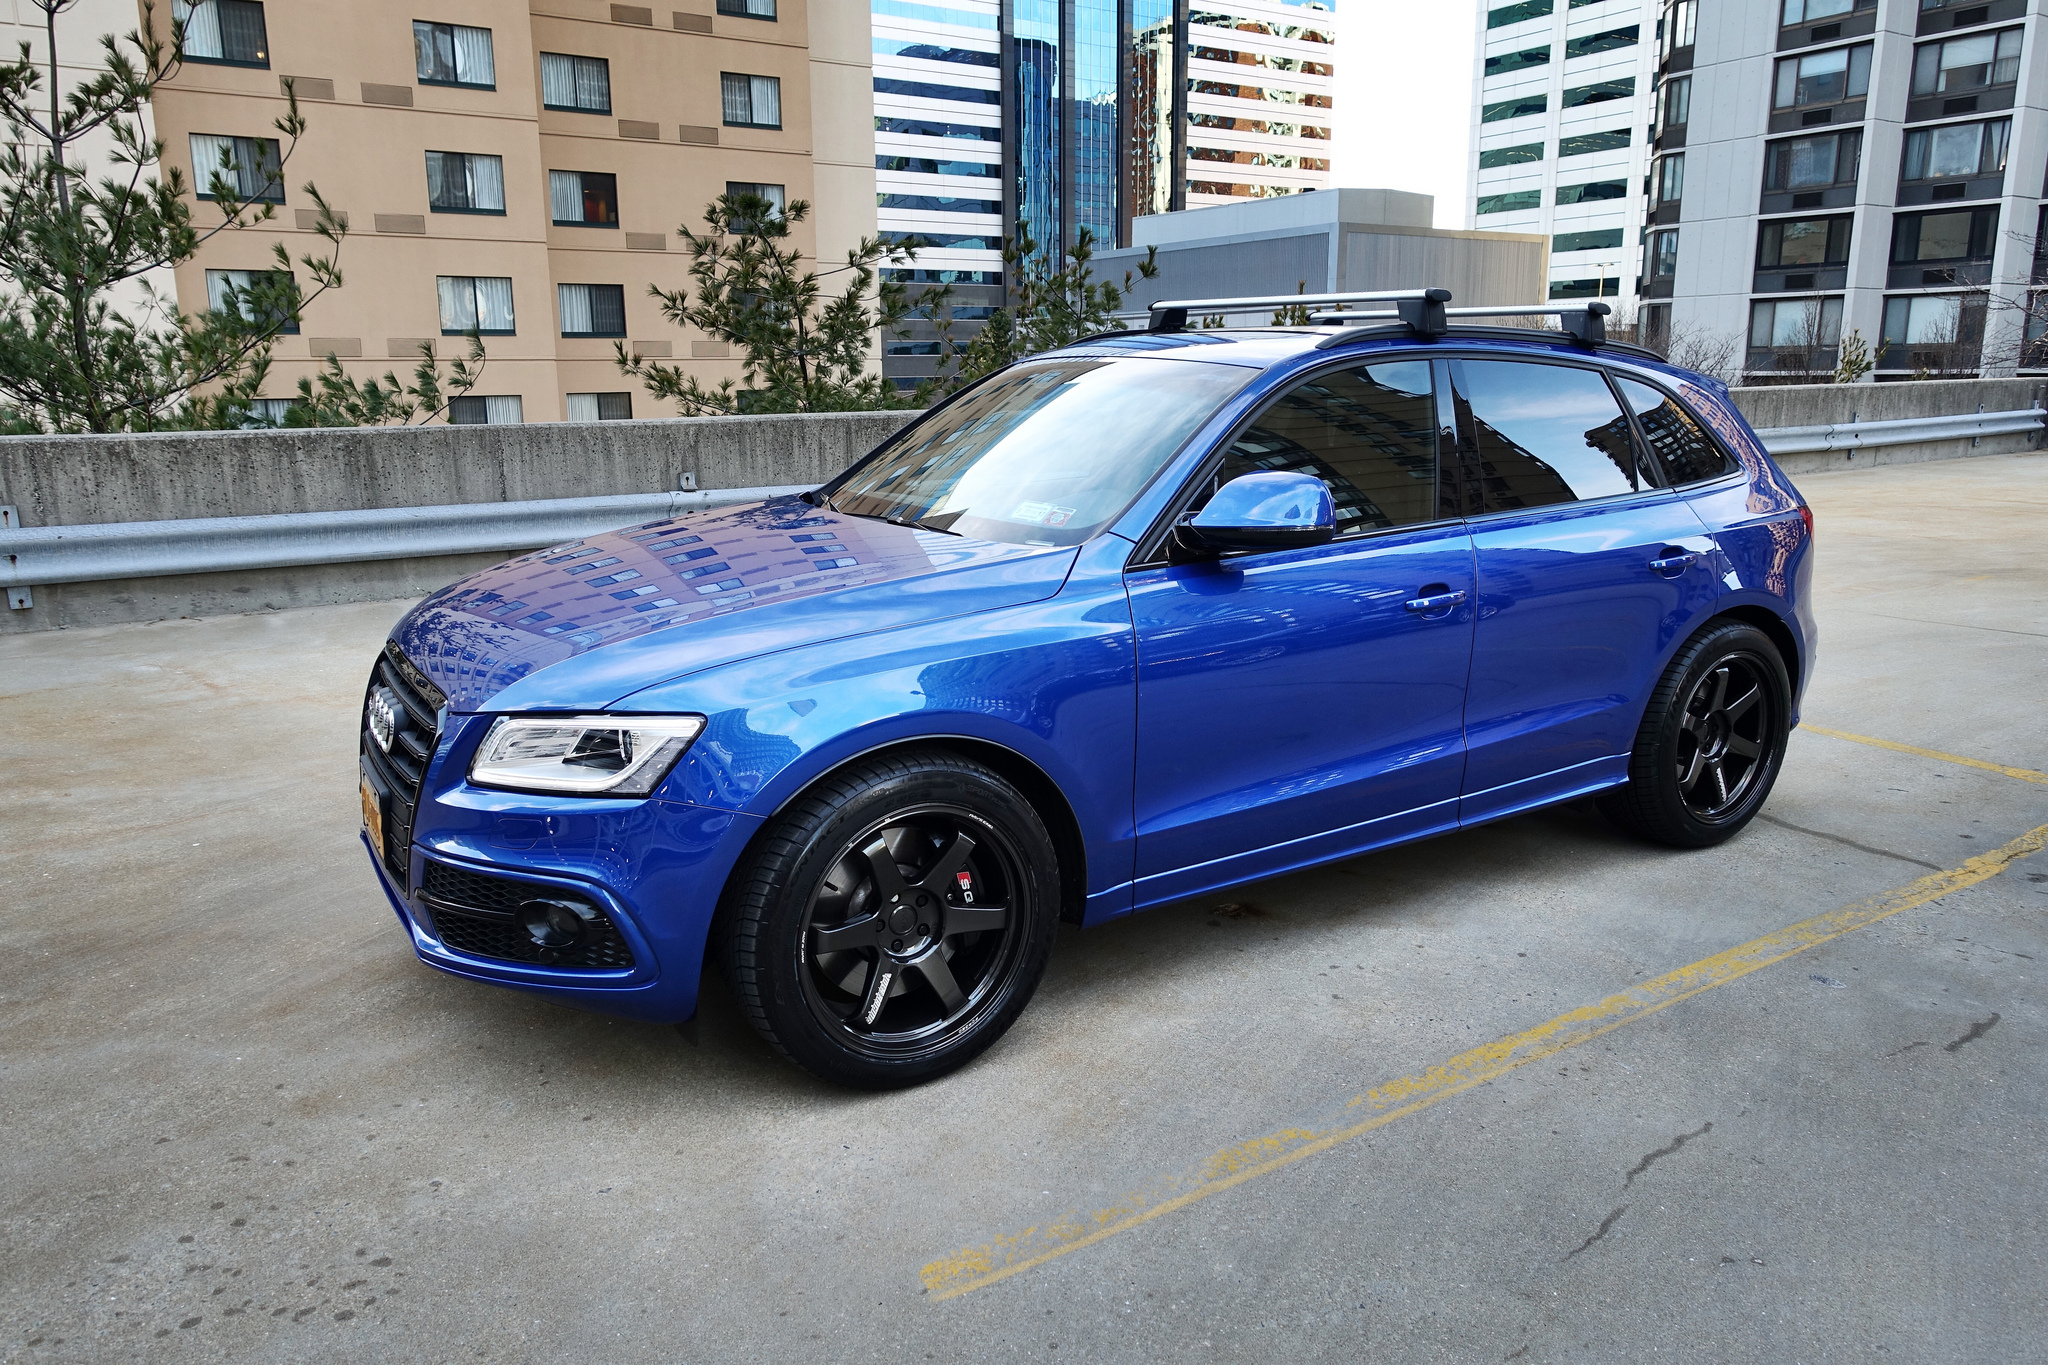 Audi Sq5 Custom Wheels Volk Te37 Ultra 20x10 0 Et 25